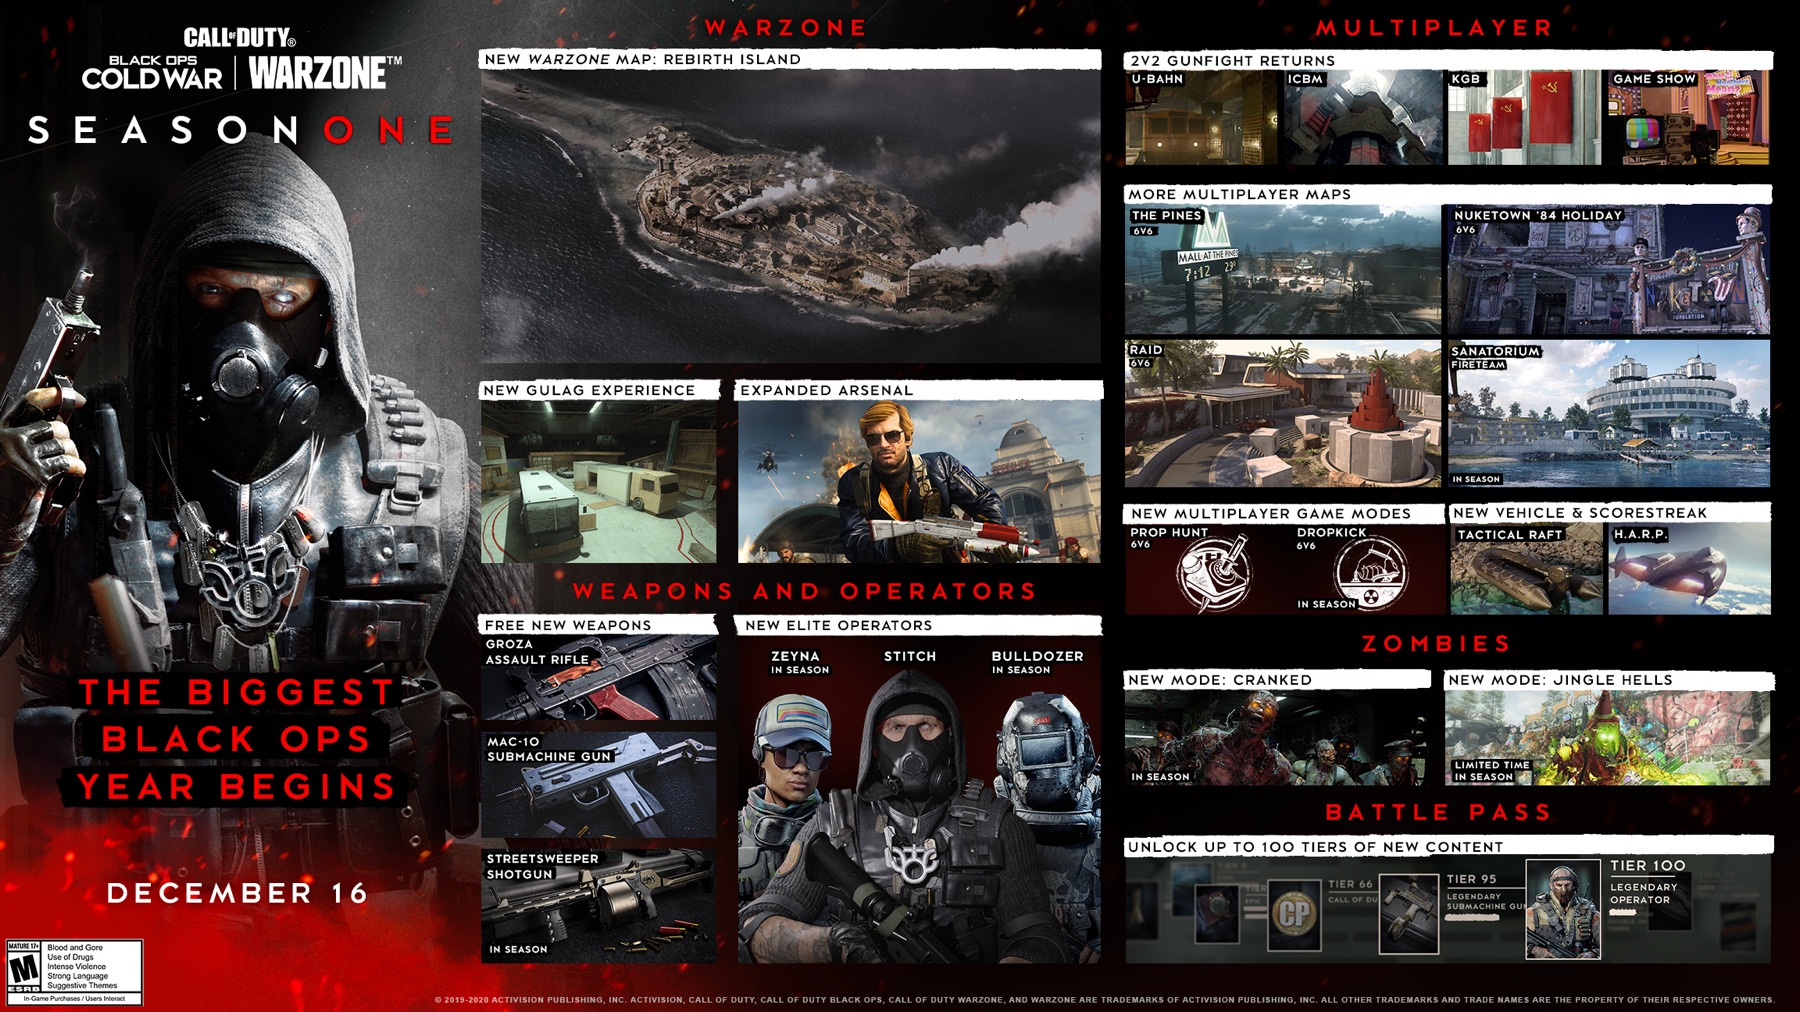 Black Ops Cold War Season 1 roadmap